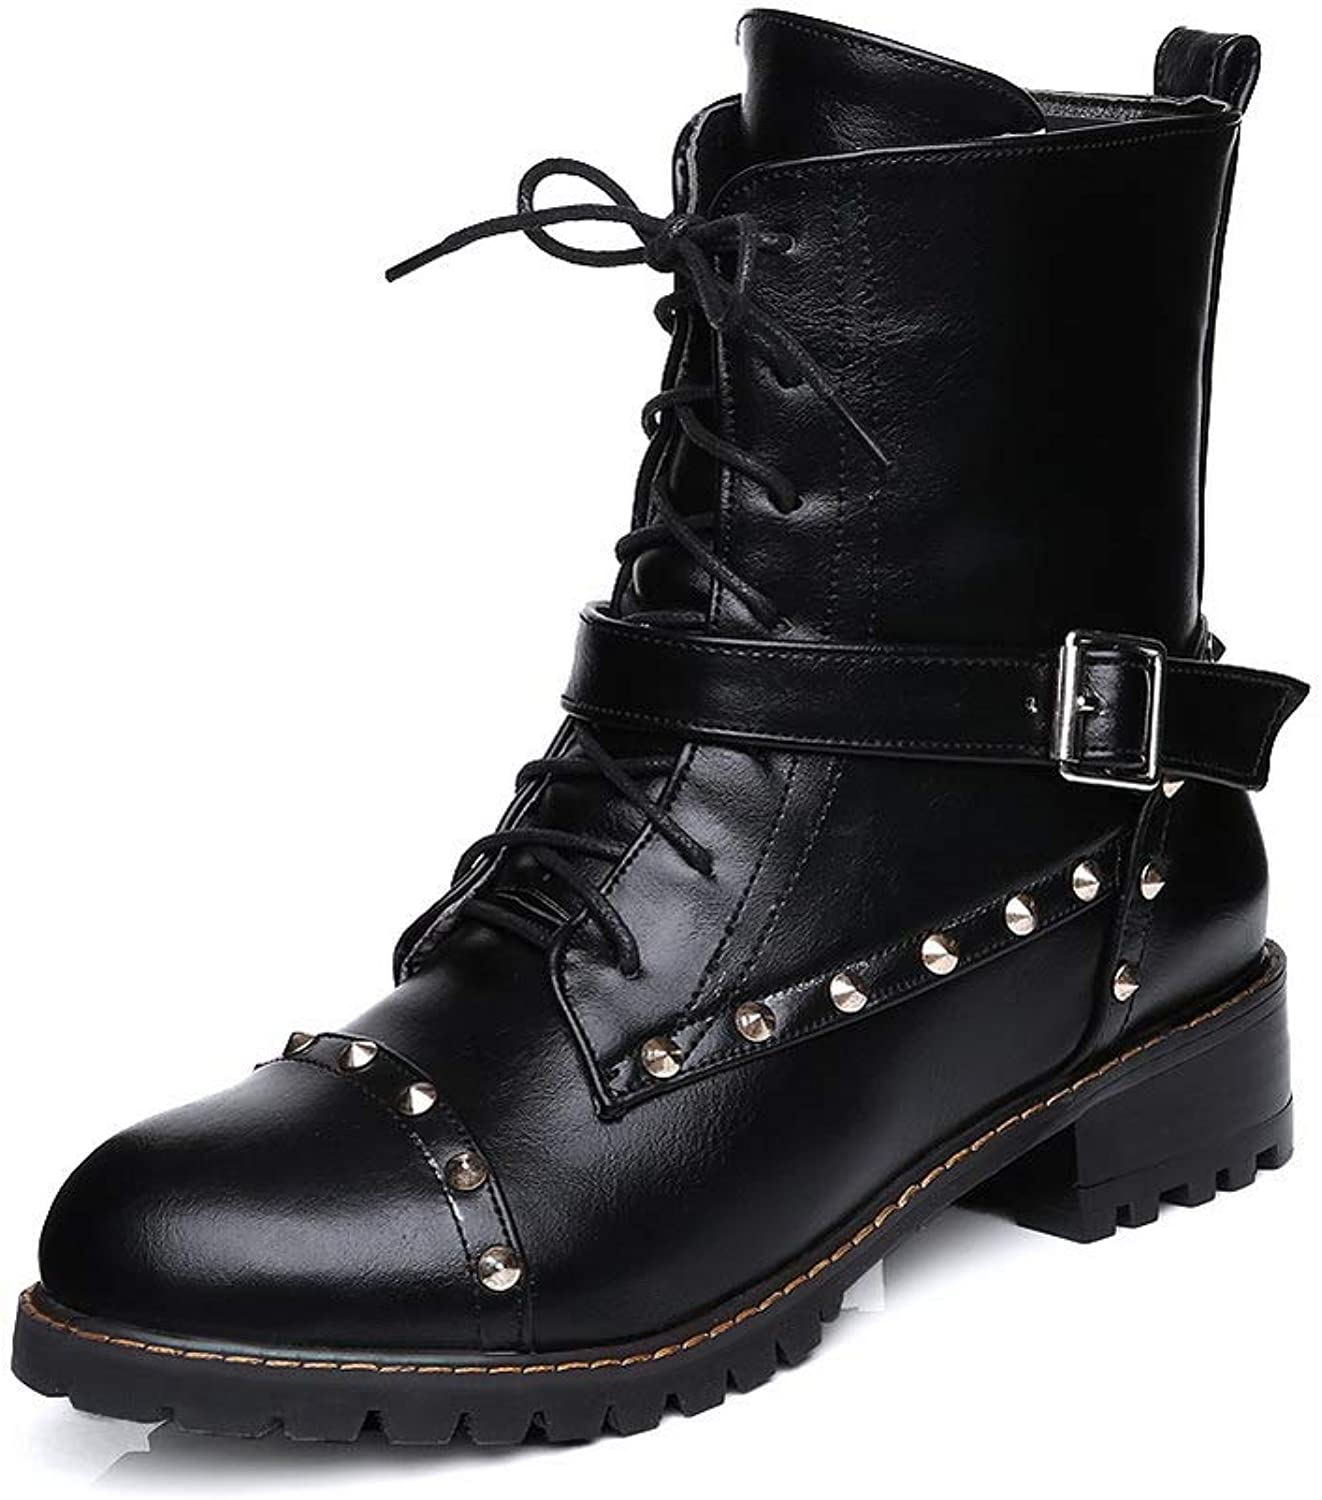 1TO9 Womens Studded Boots Smooth Leather Urethane Boots MNS03094